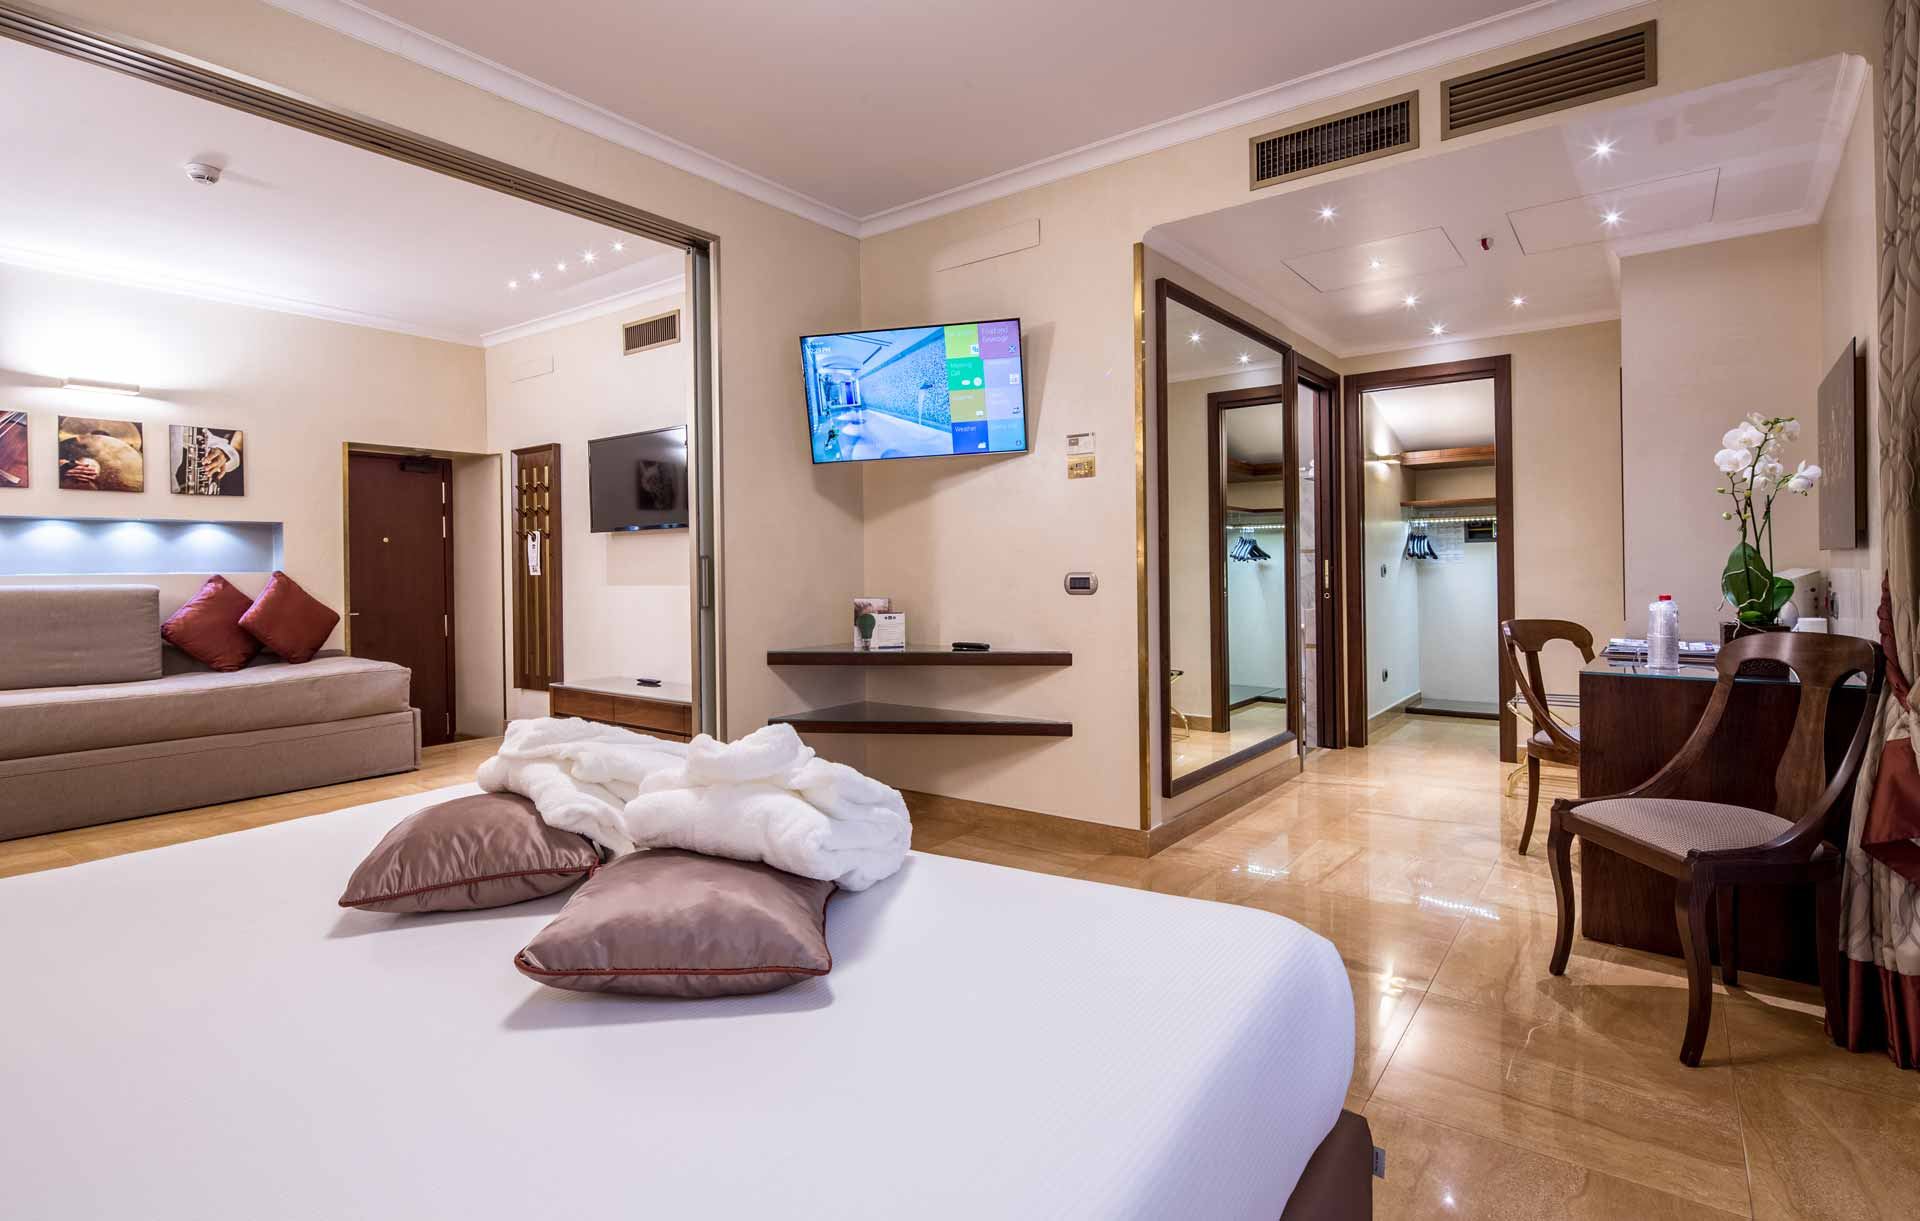 The Place Luxury Double Room Milan